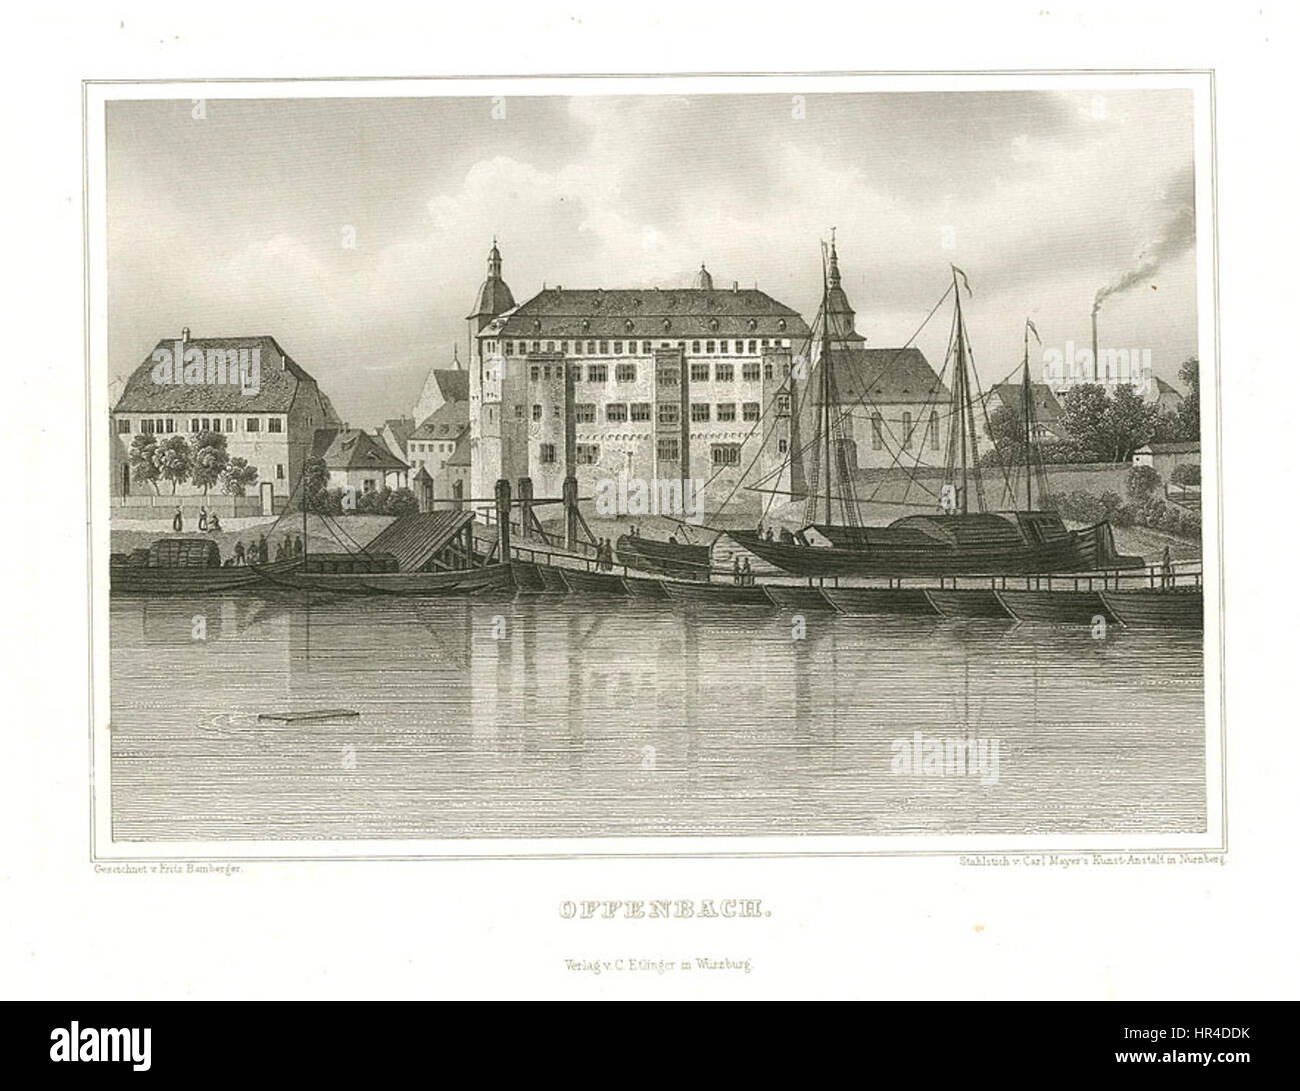 Offenbach Stahlstich 1847 - Stock Image